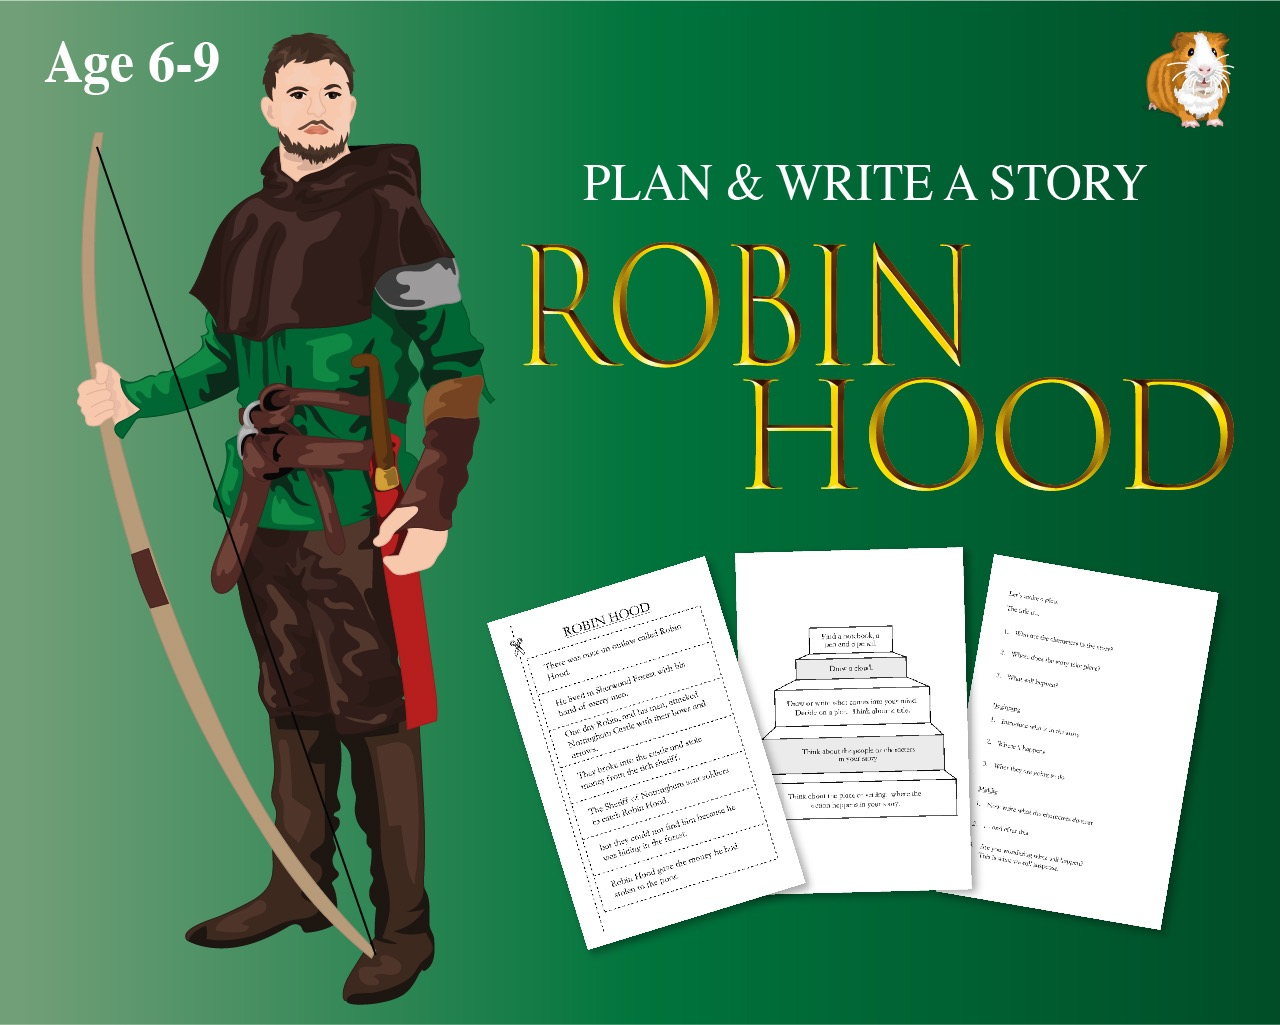 Cut Out And Write The Story Of 'Robin Hood' (6-9 years)